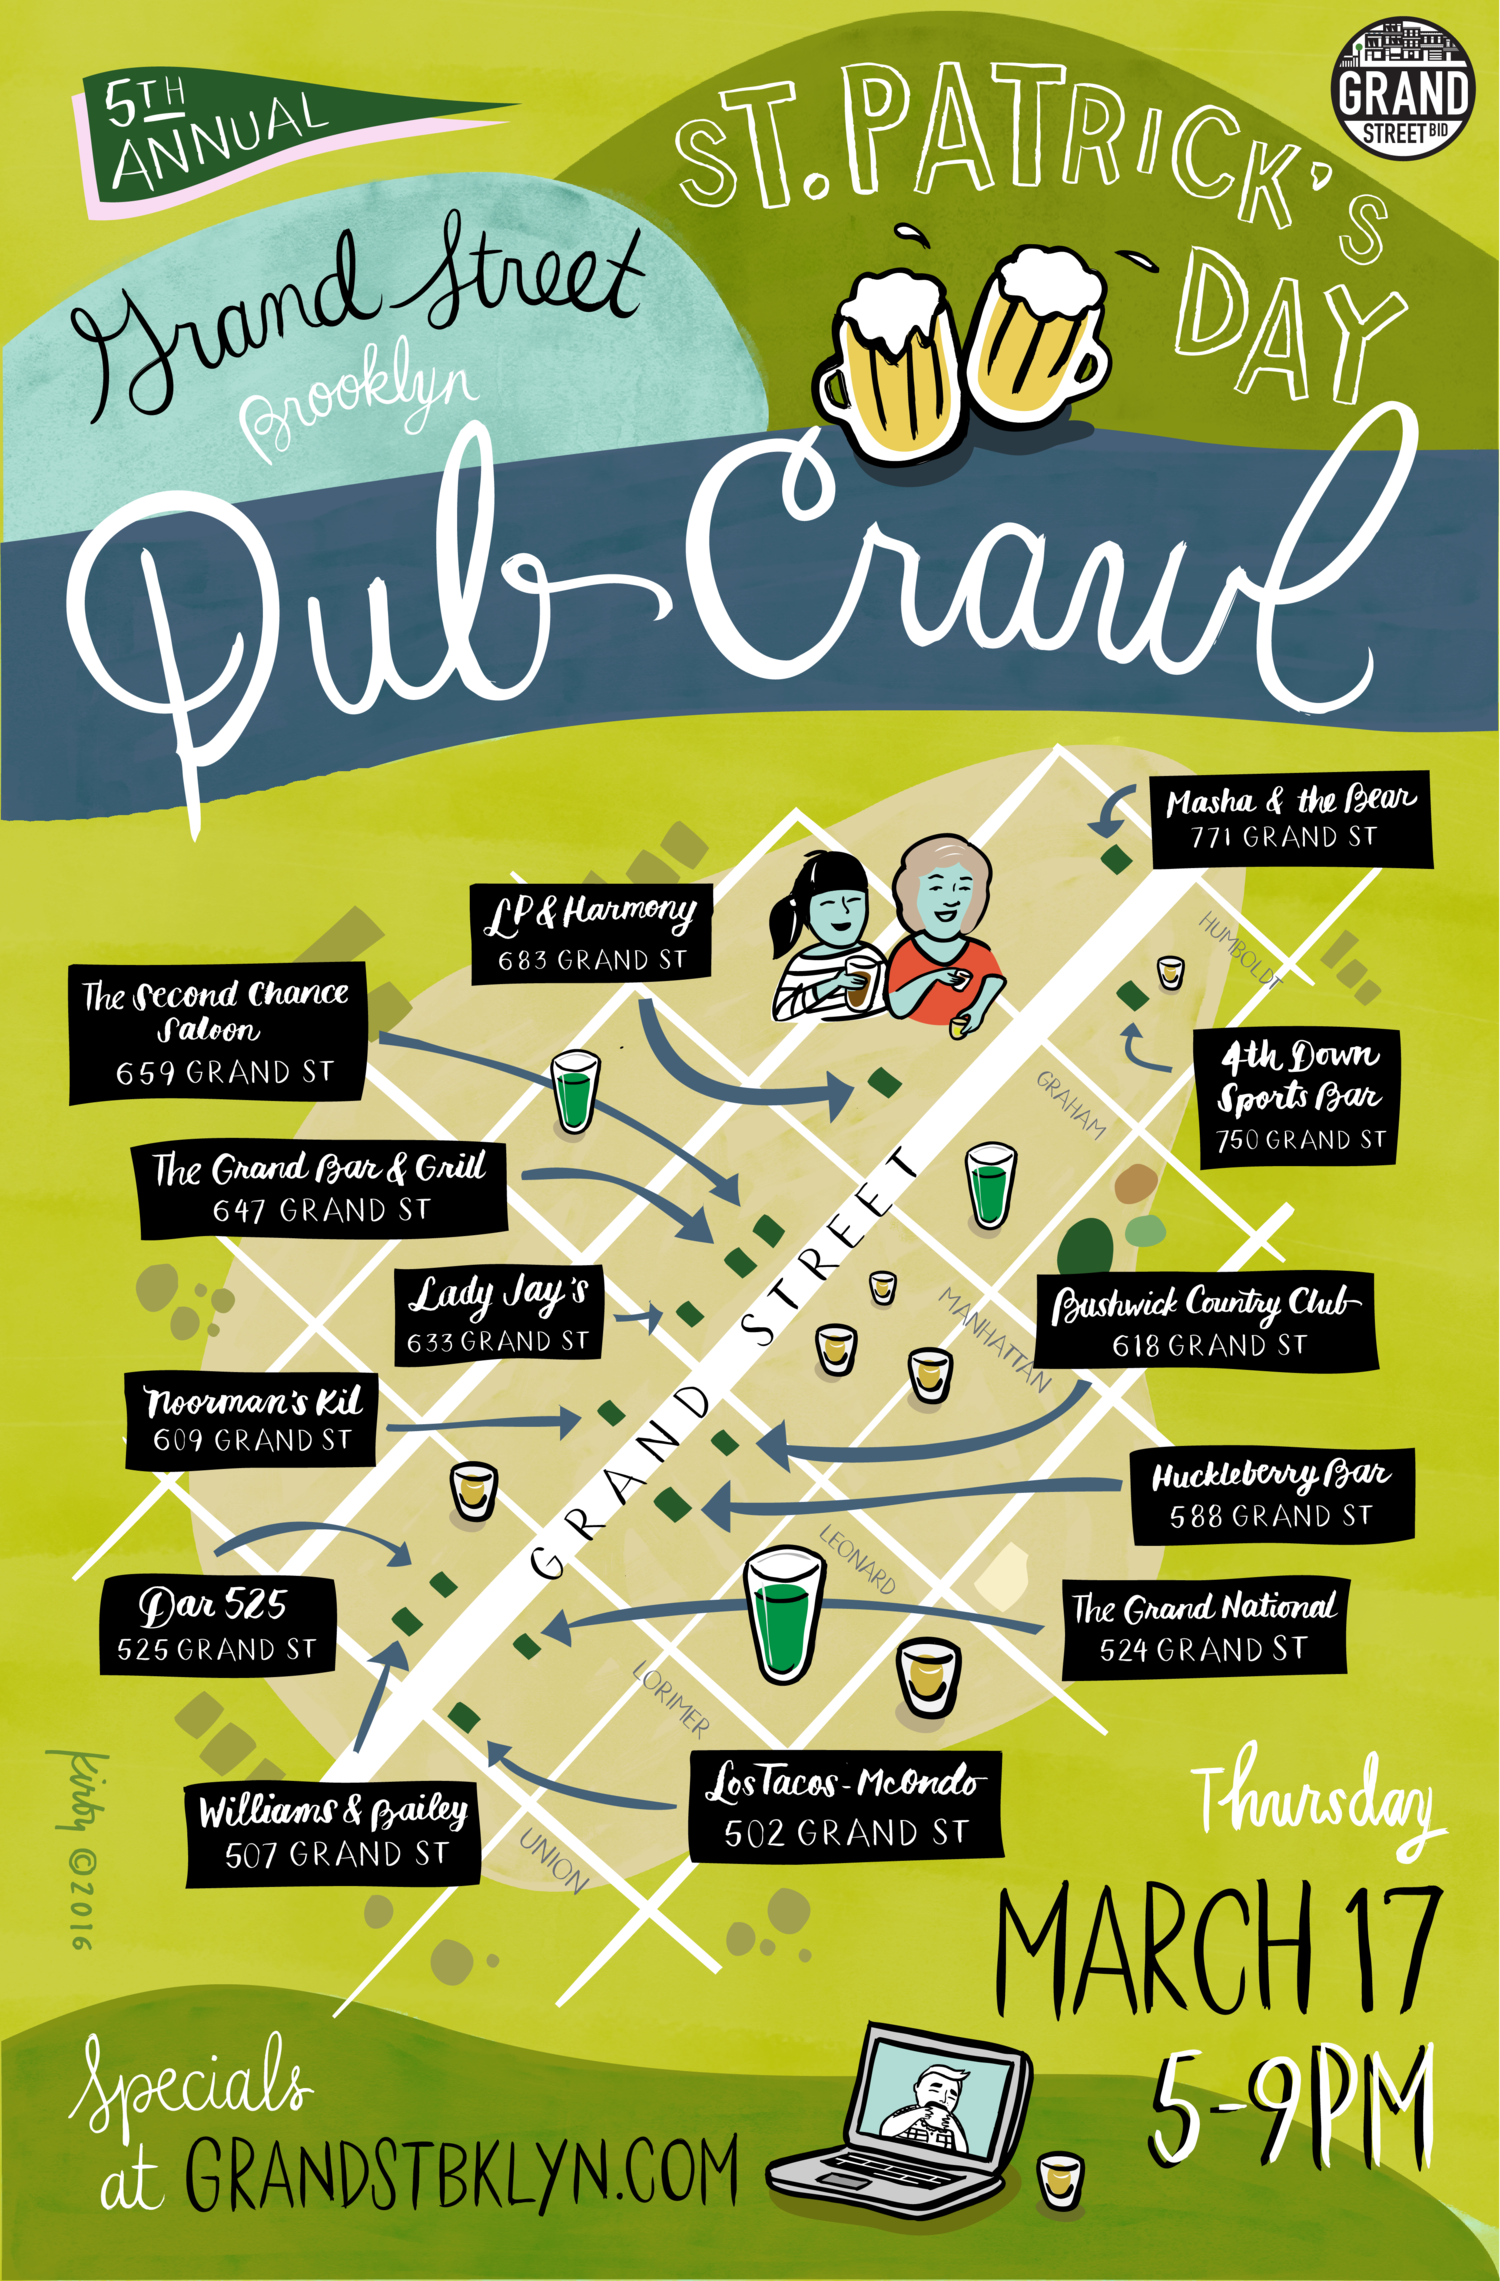 5th annual St. Patrick's Day Pub Crawl on Grand Street